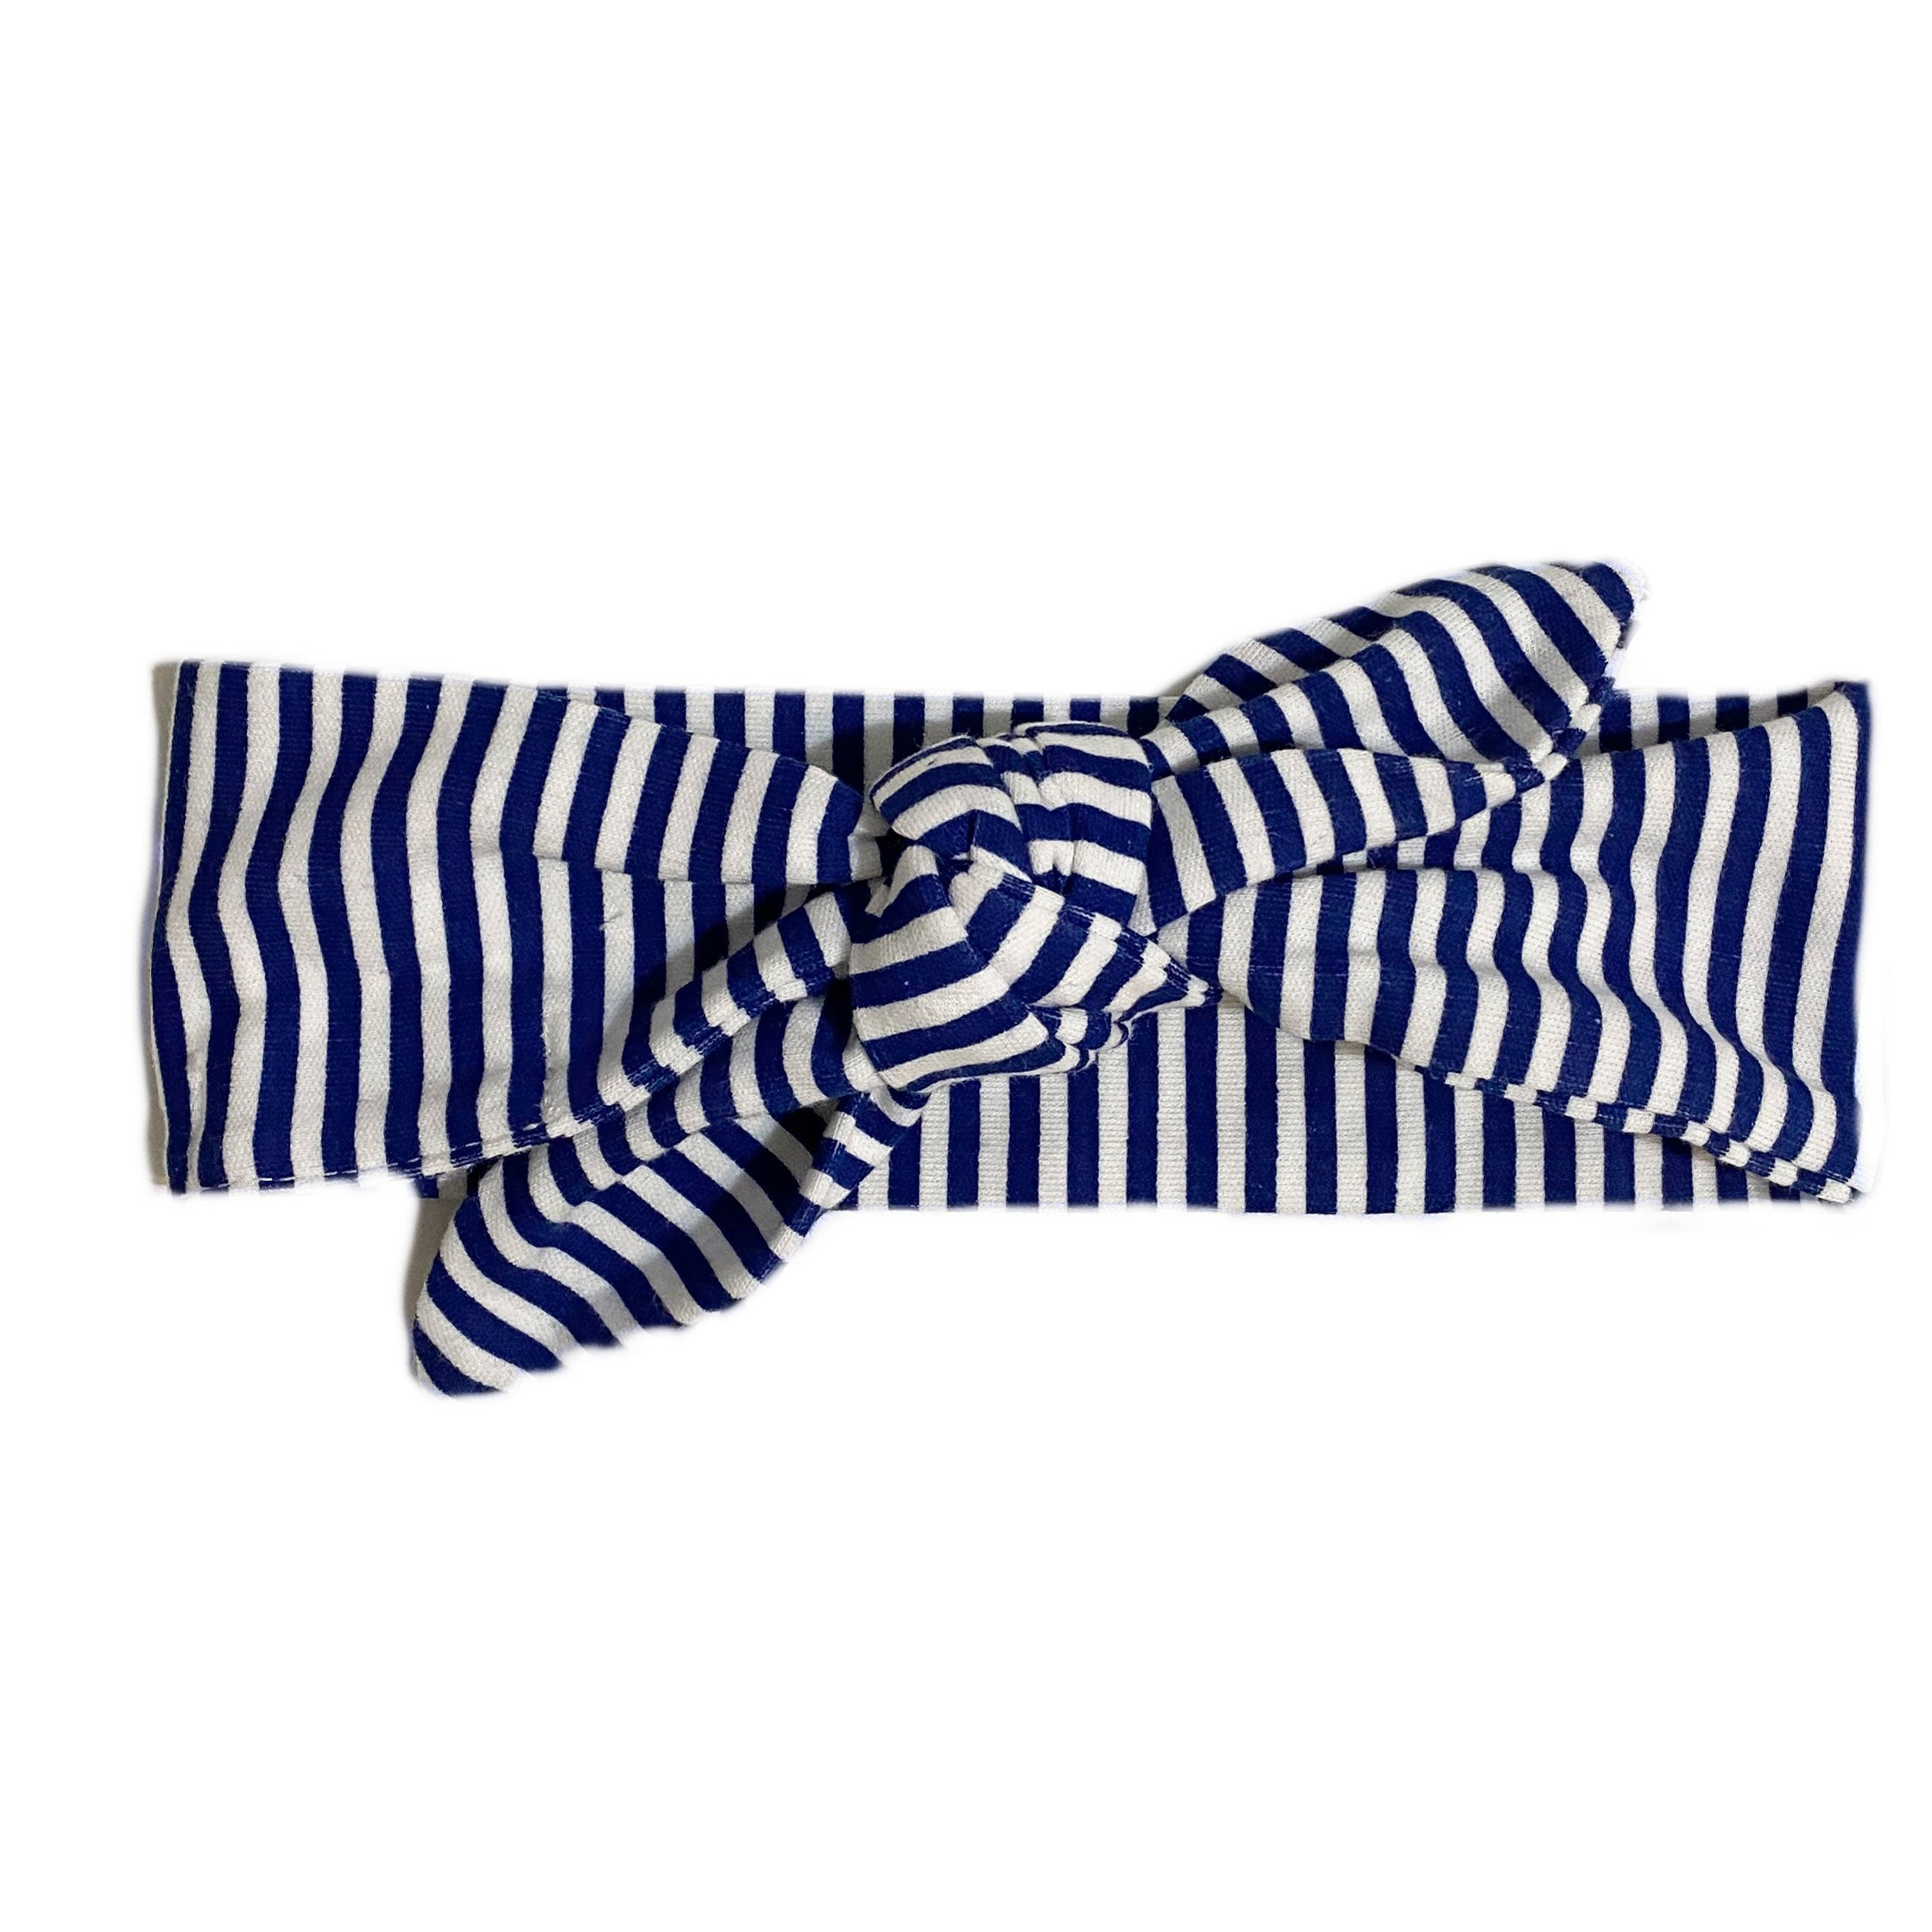 Stripe Baby Headband at Bonjour Baby Baskets